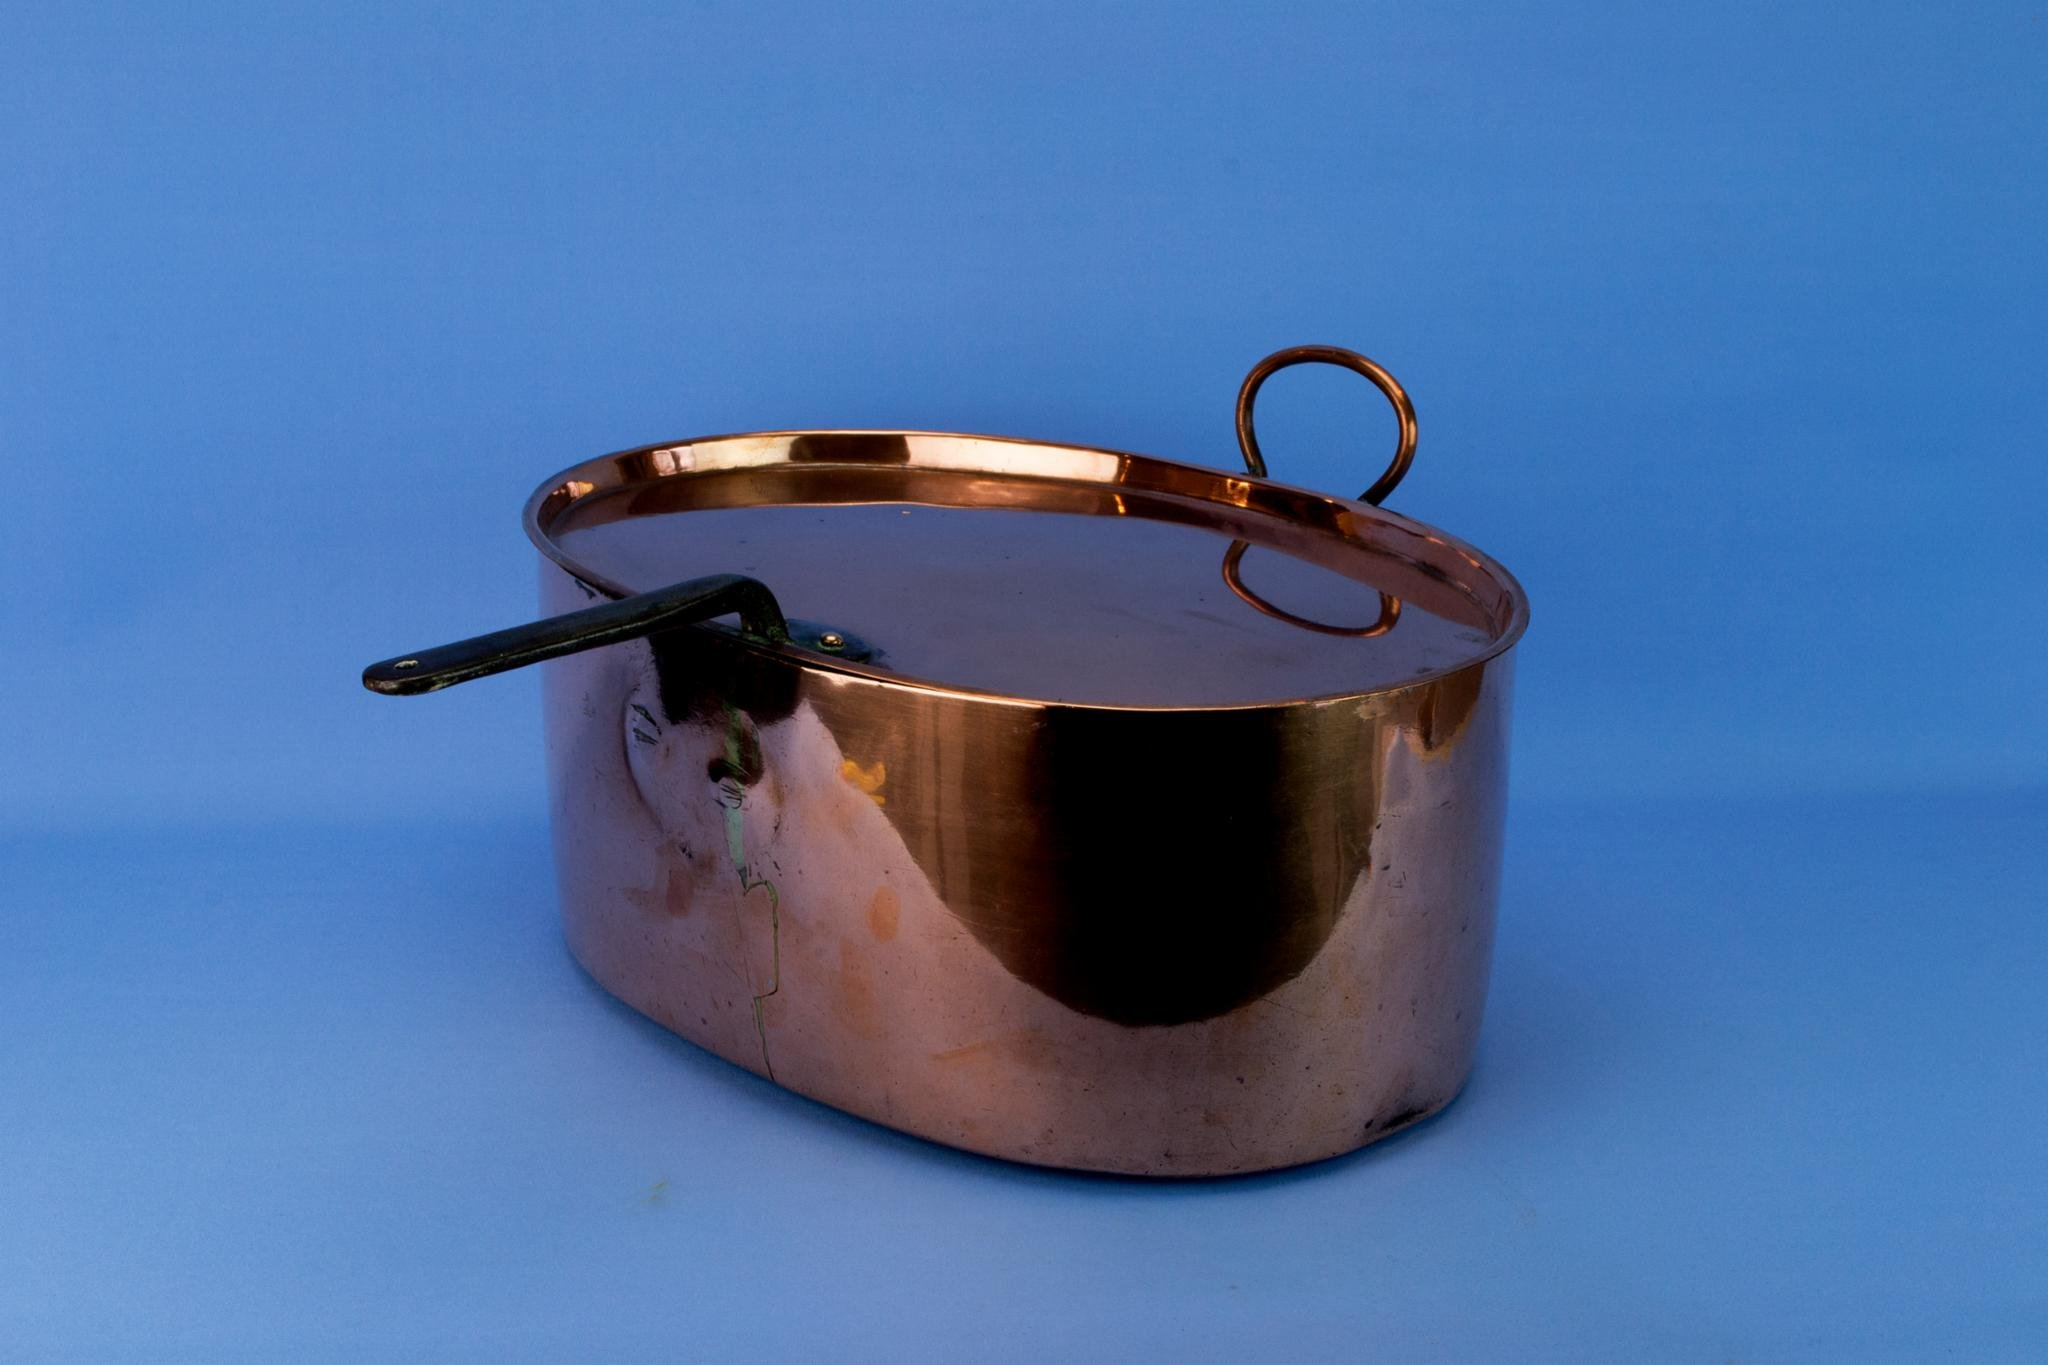 Large Copper Pan Lid Cooking Pot Oval Antique Edwardian English Early 1900s Iron Handle